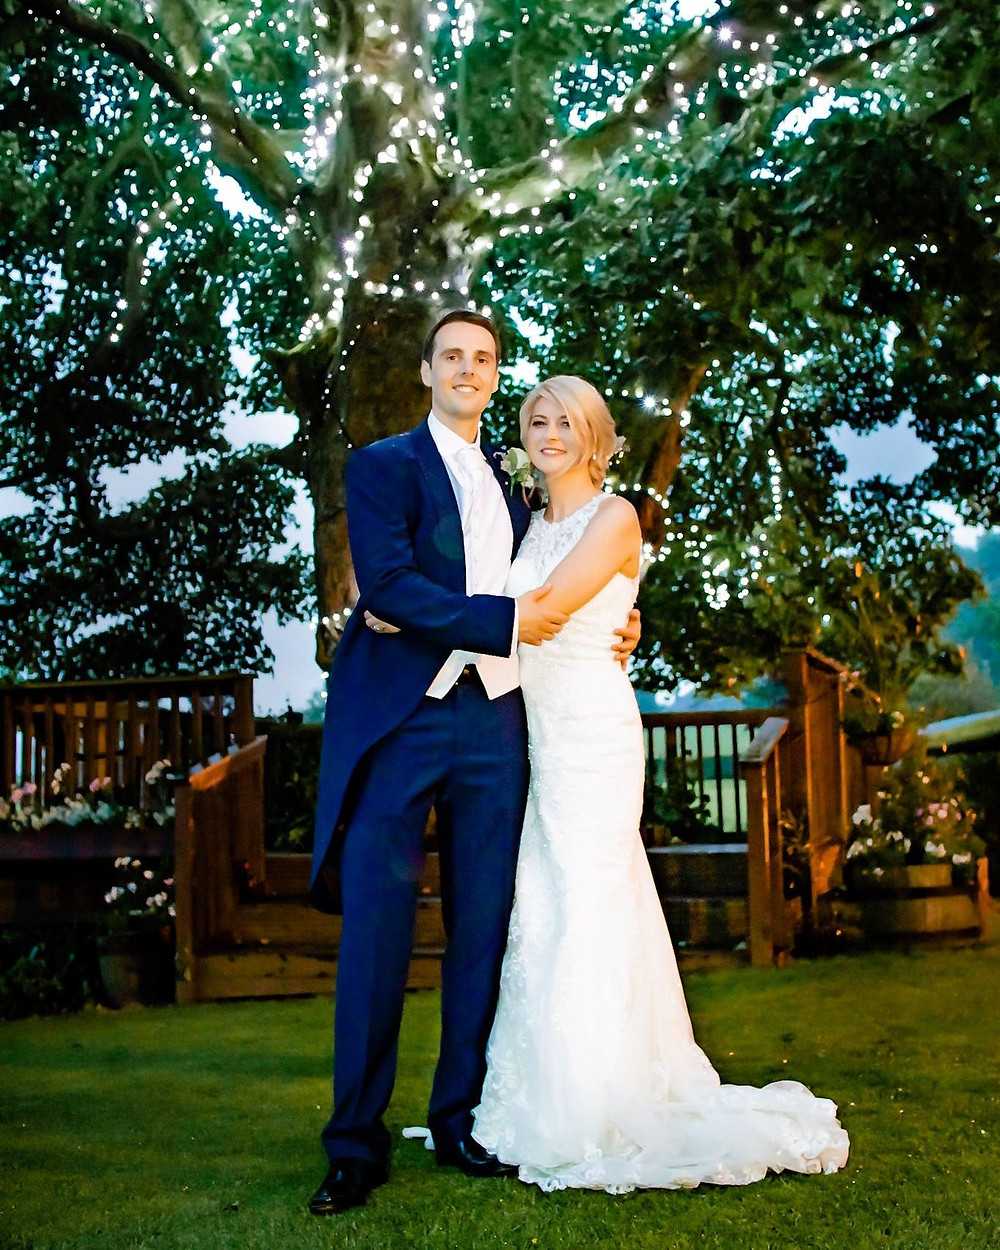 Wedding couple pose for photos under tree